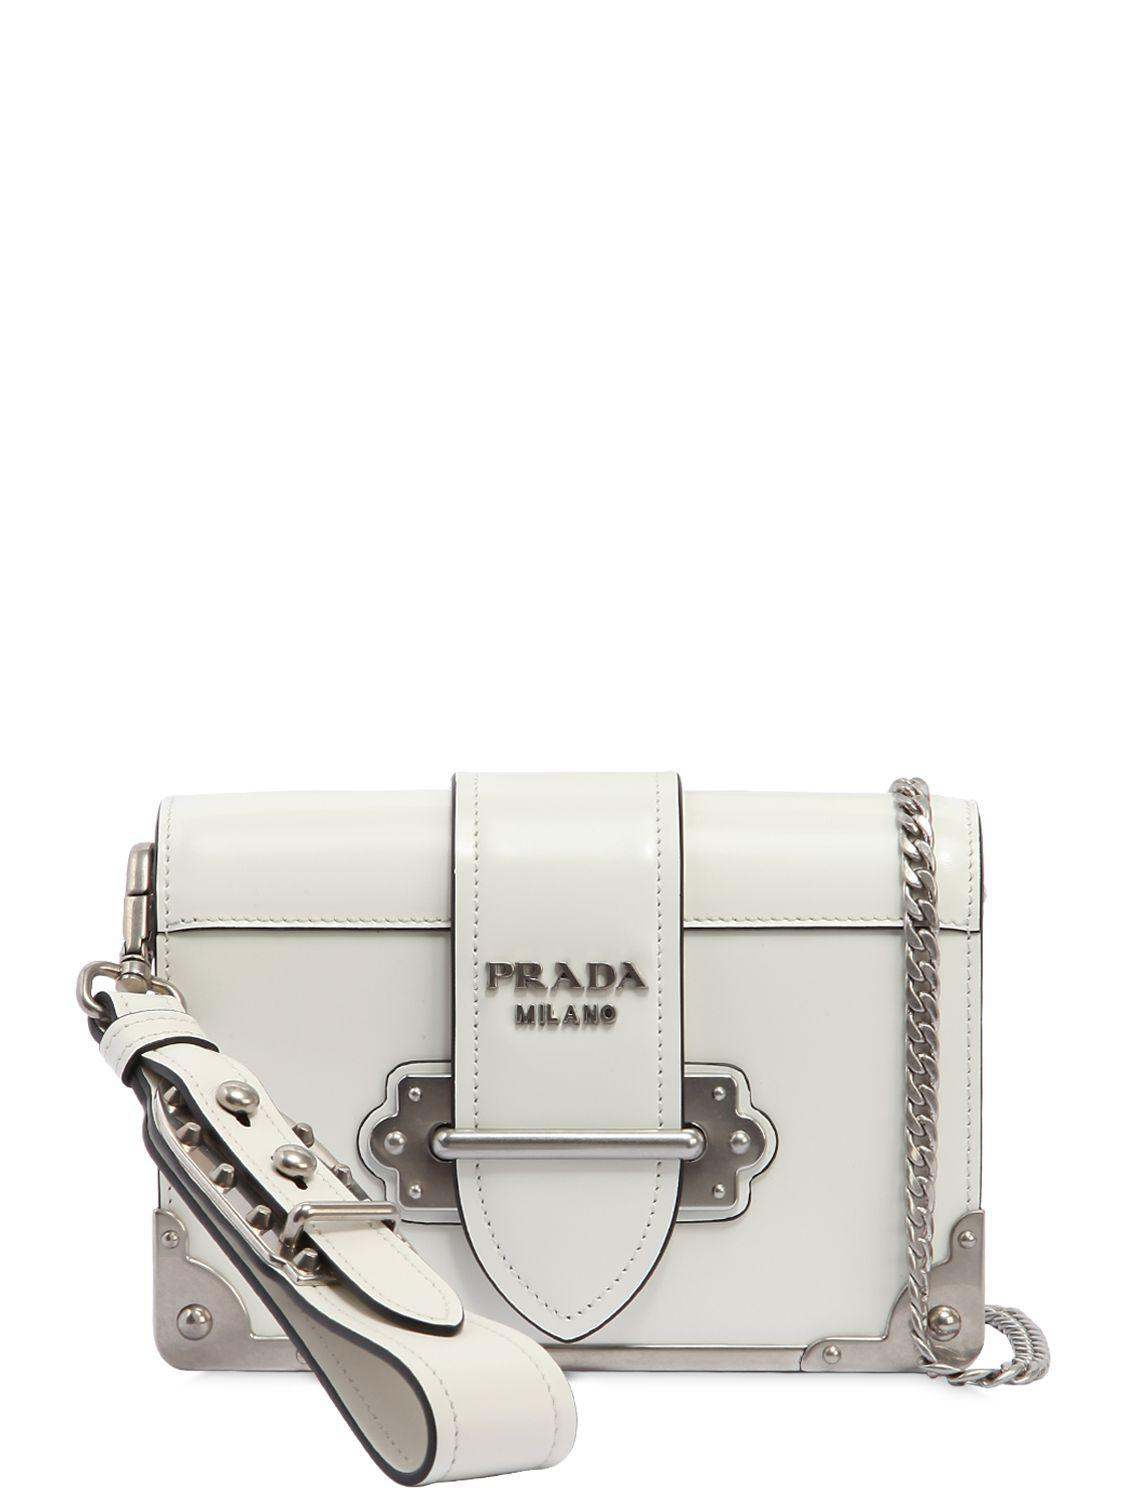 1367950074e4 Prada Small Cahier Polished Leather Bag in White - Lyst